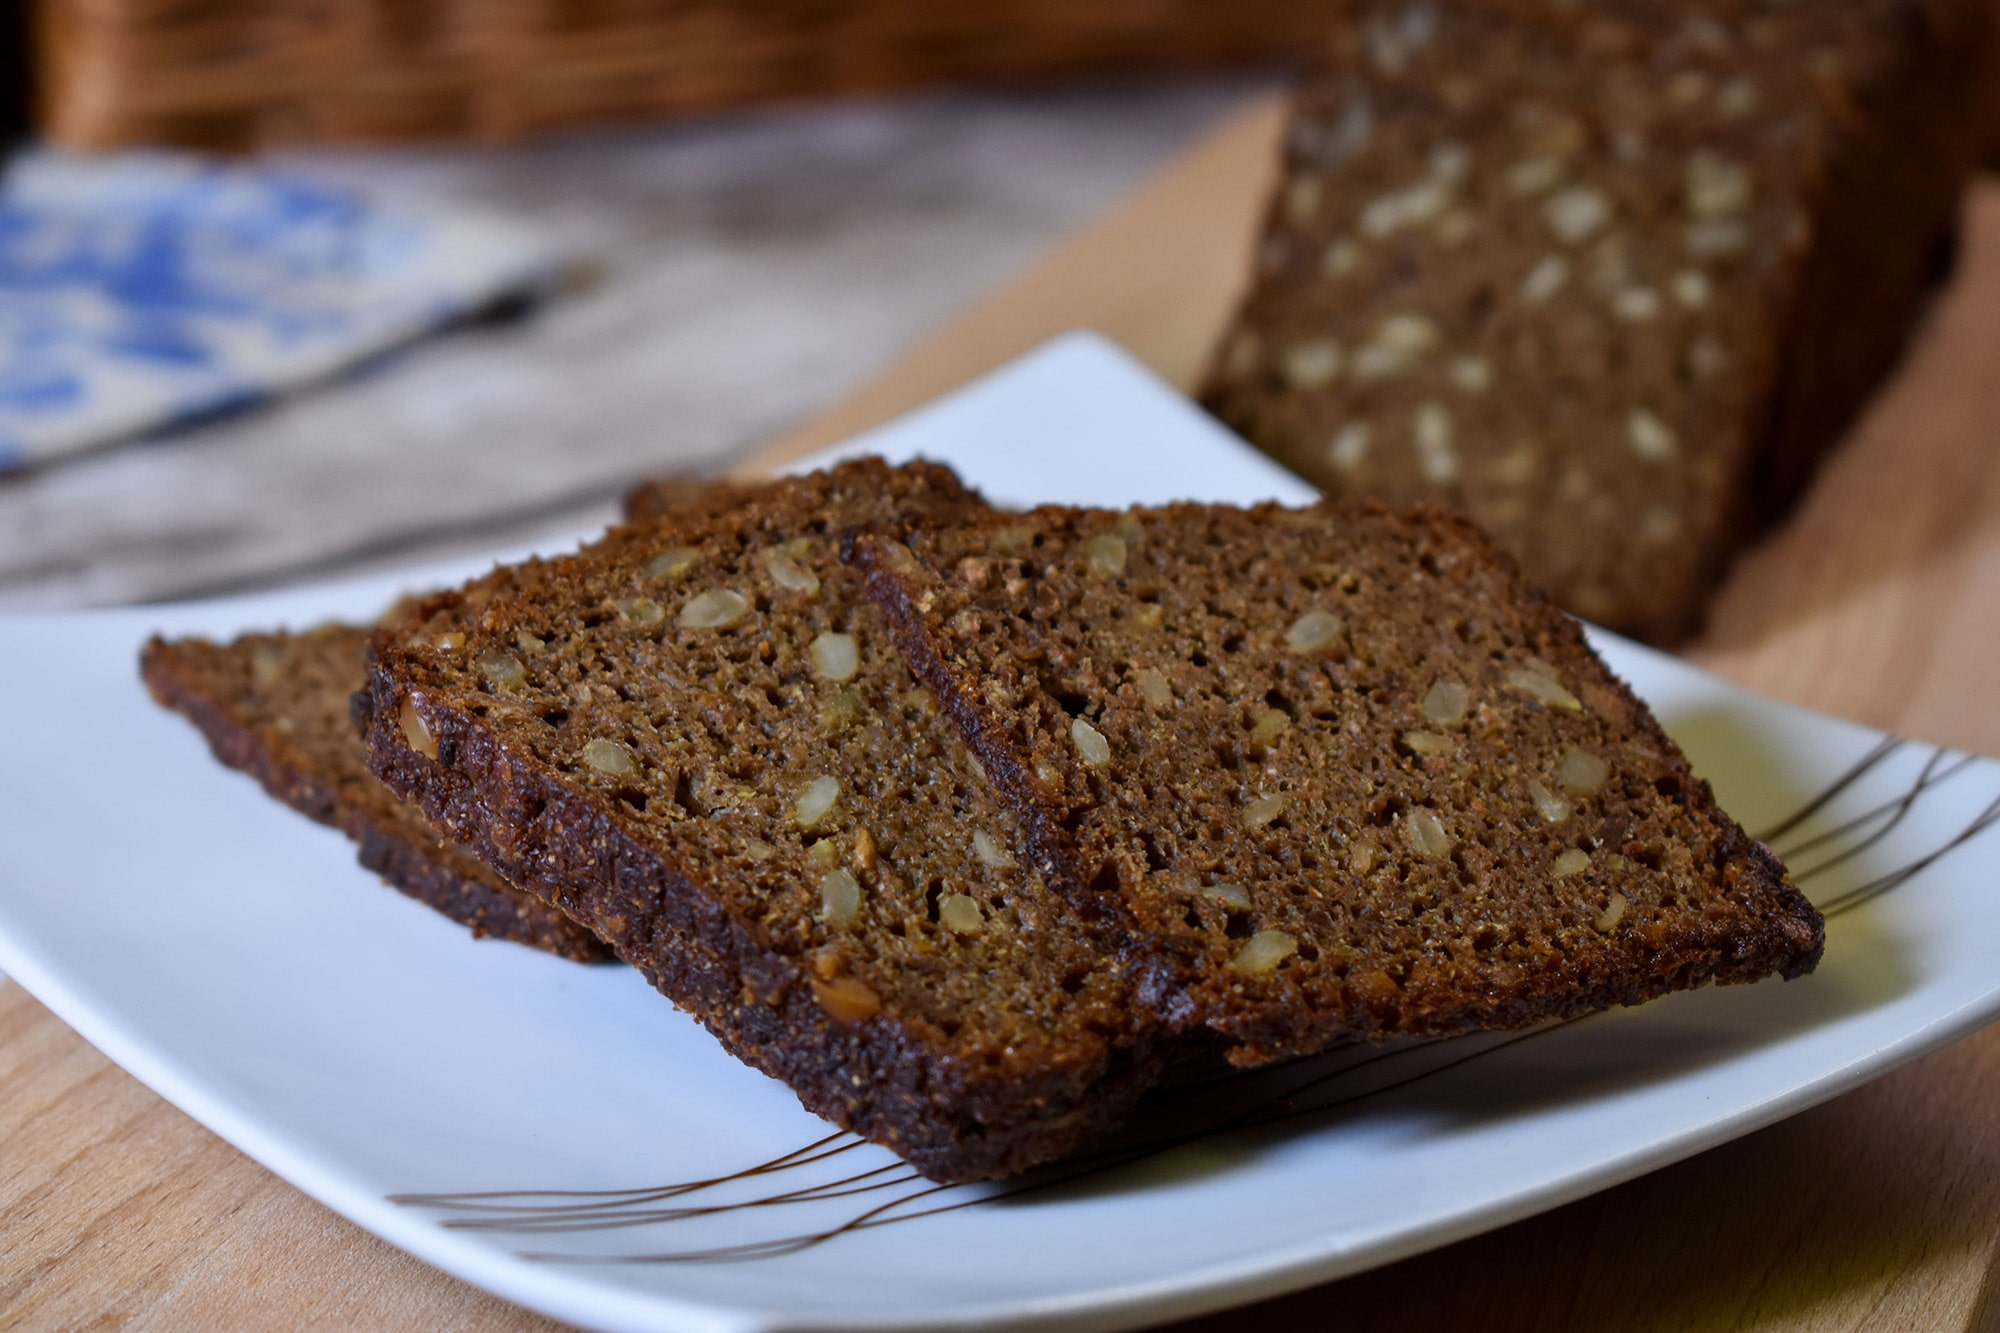 German Rye Bread by Fosters Bakery